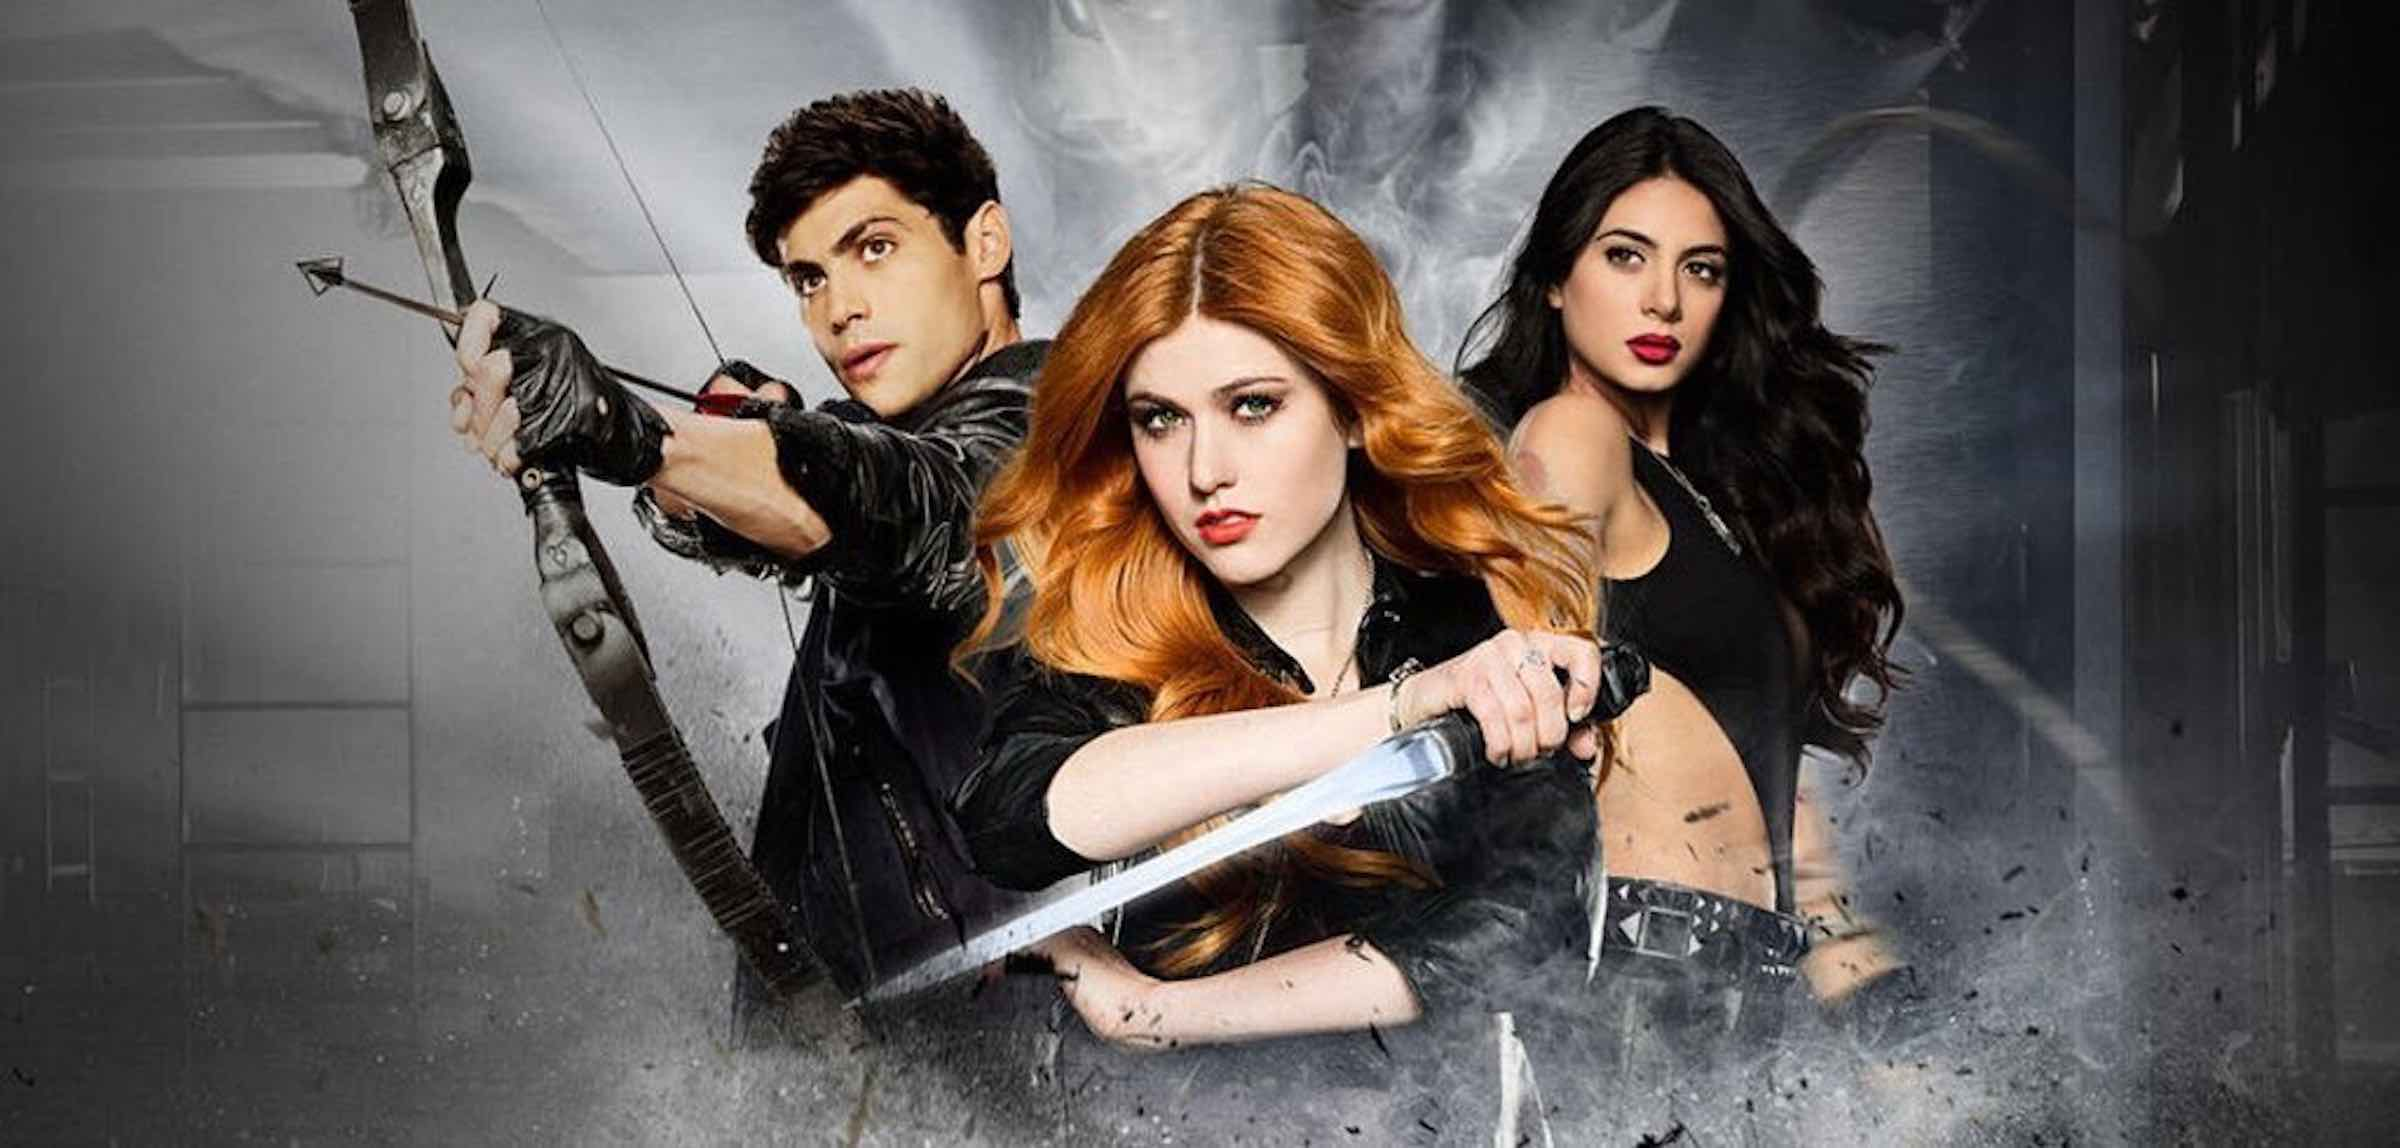 If you are fantasyphobic, Alisha Wainwright in 'Shadowhunters' is the obvious choice to get you into the genre.